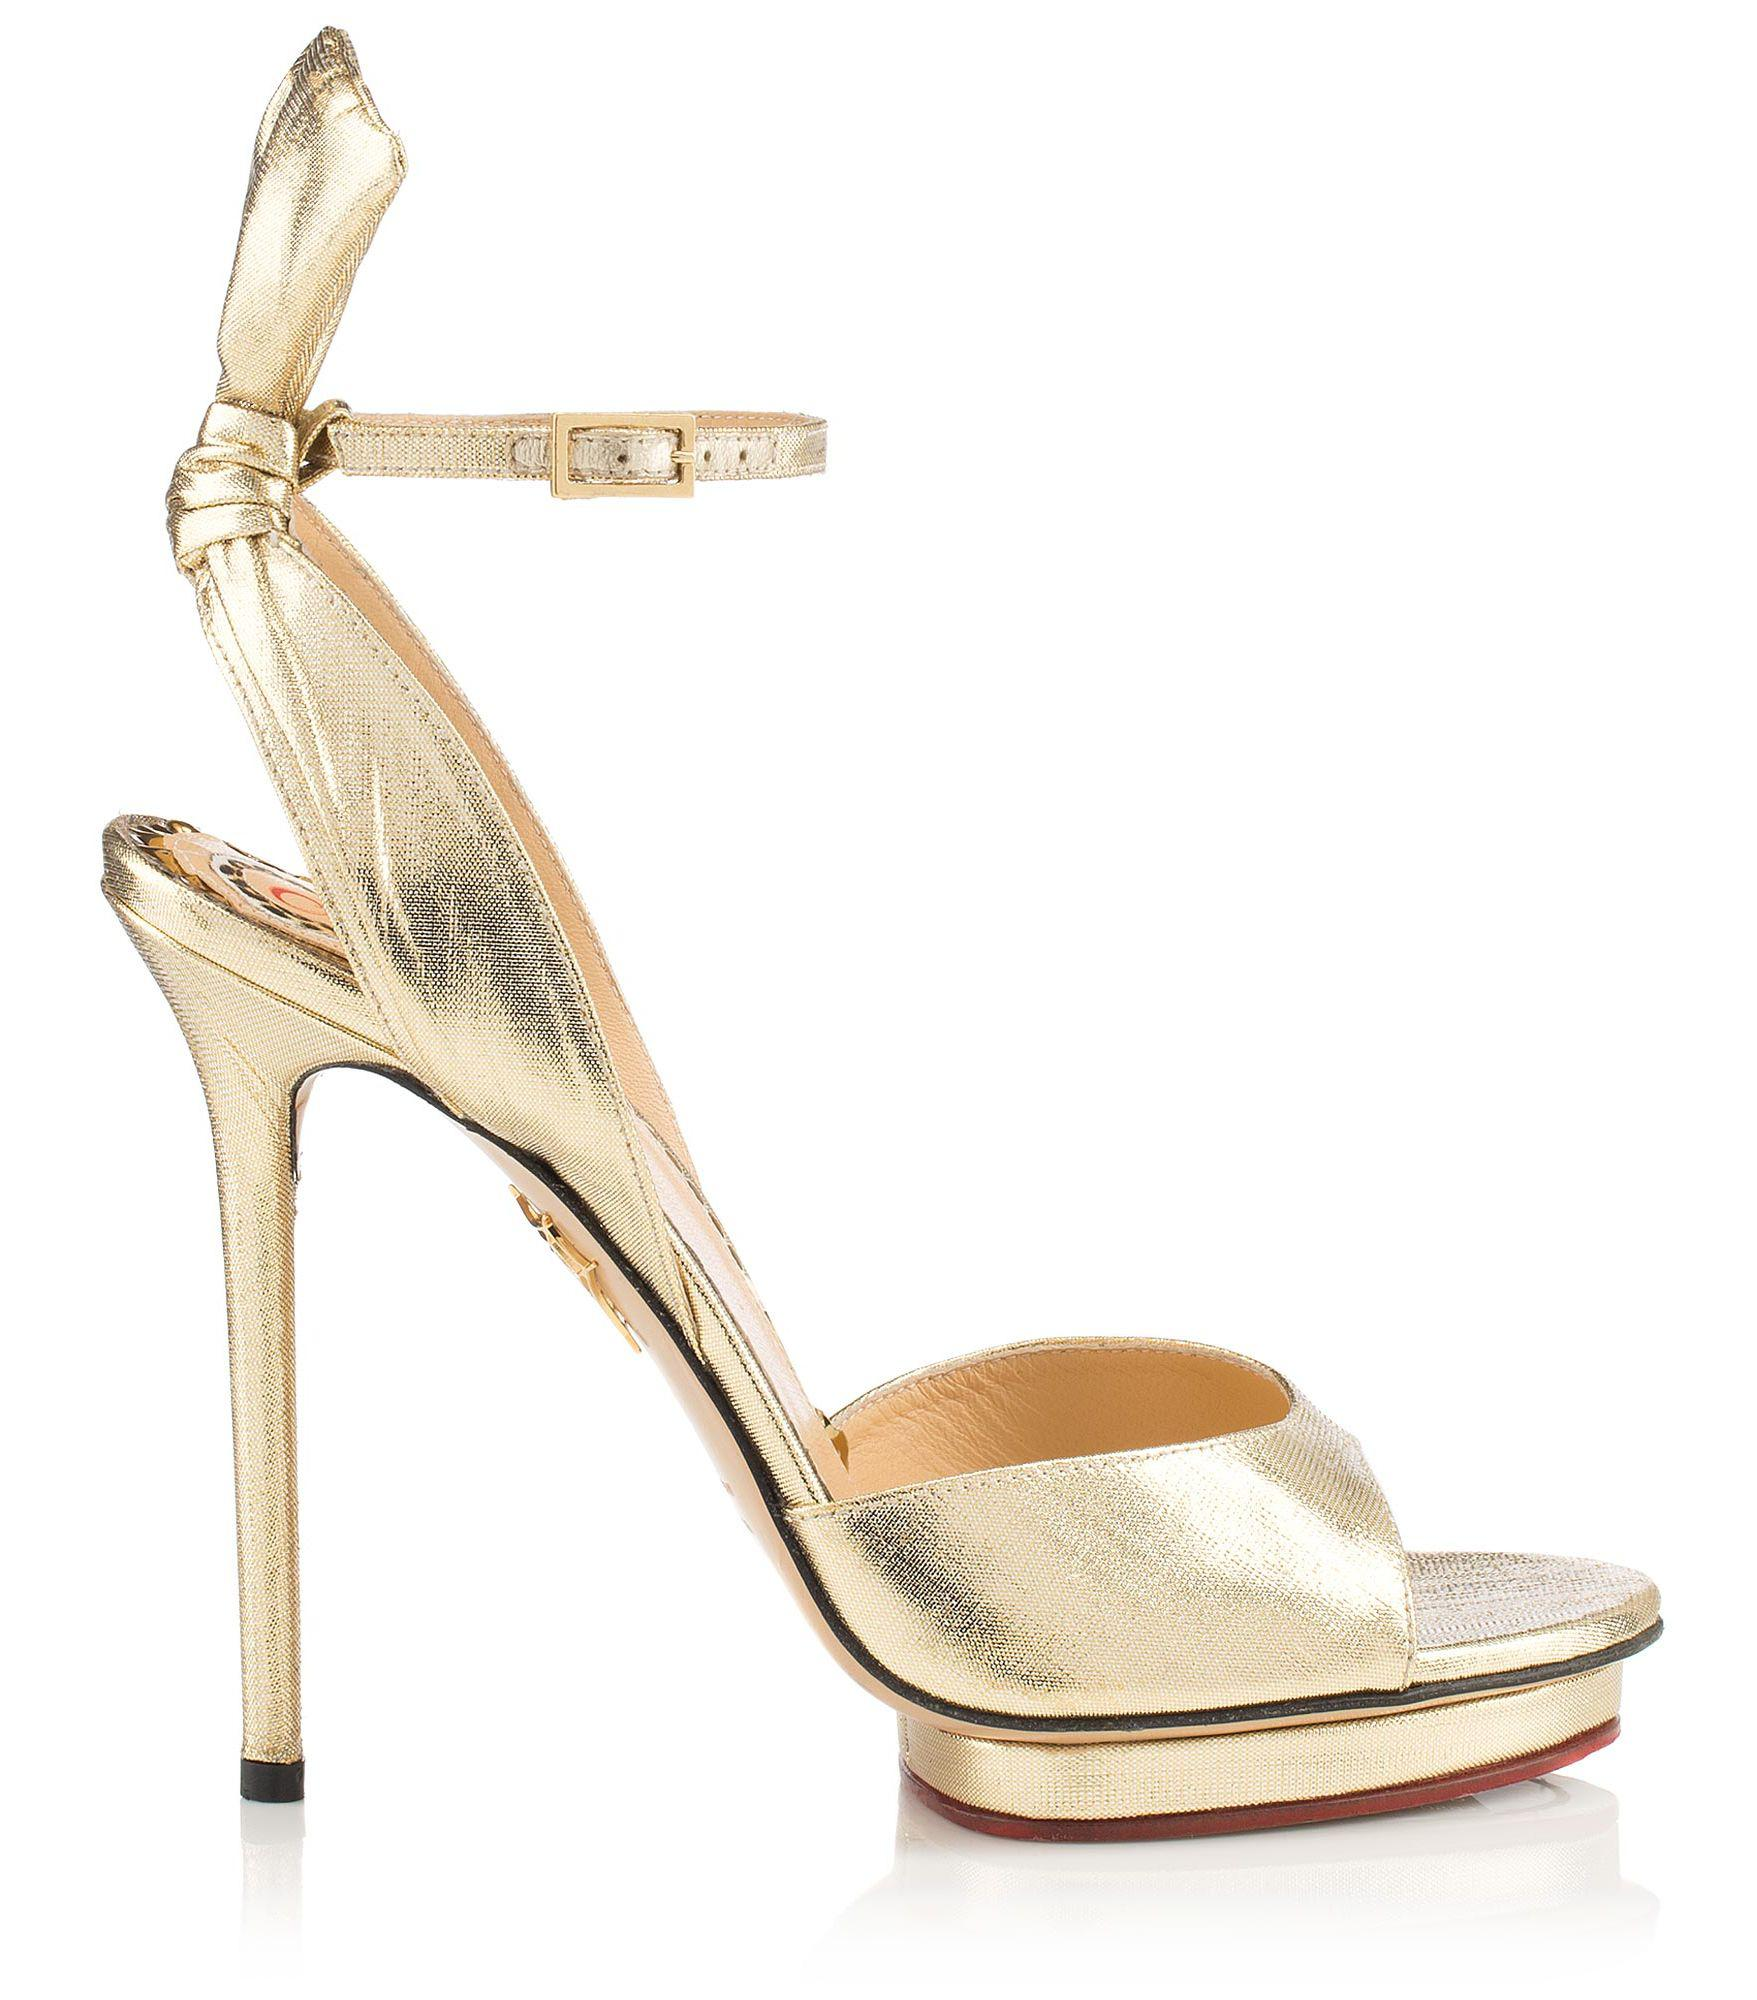 d2163d47b19 Charlotte Olympia Wallace in Metallic - Save 1% - Lyst